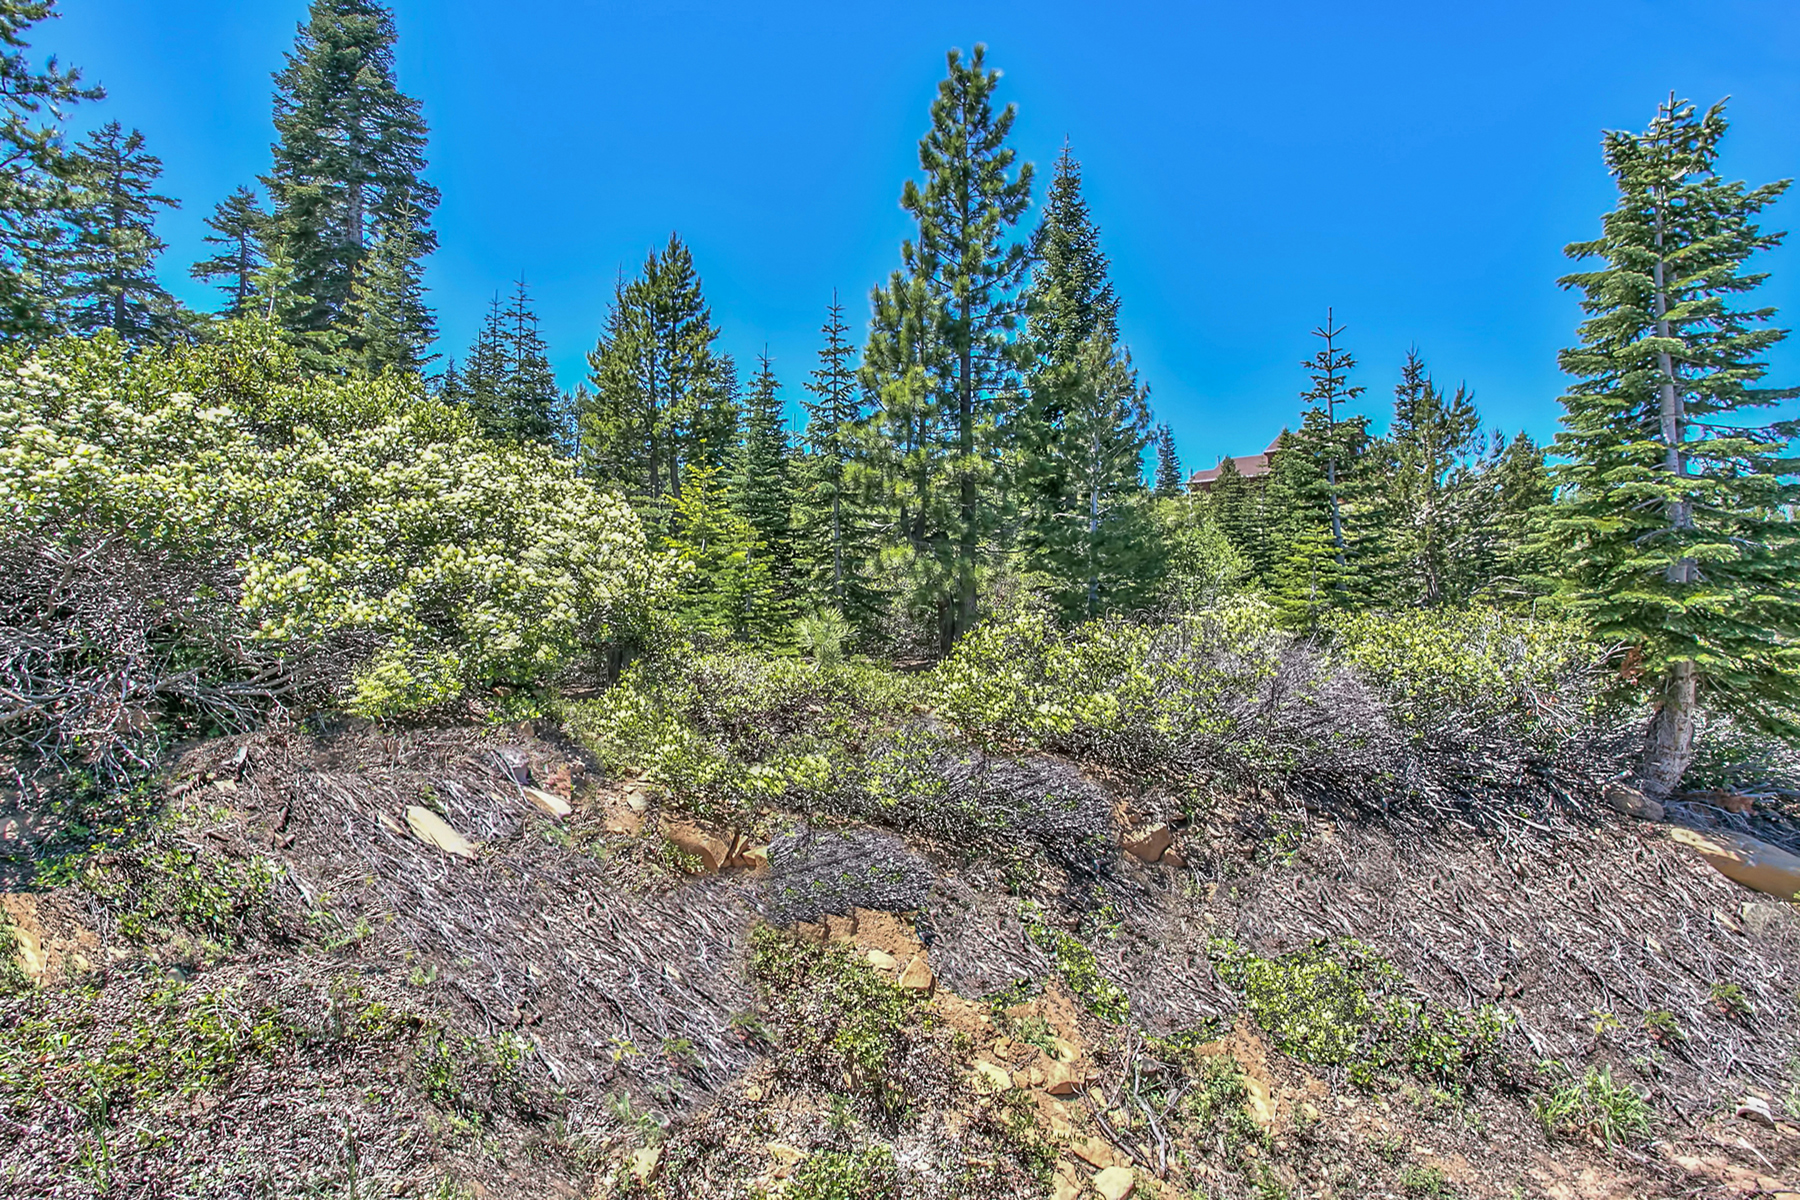 Additional photo for property listing at 15092 Skislope 15092 Skislope Way Truckee, California 96161 United States